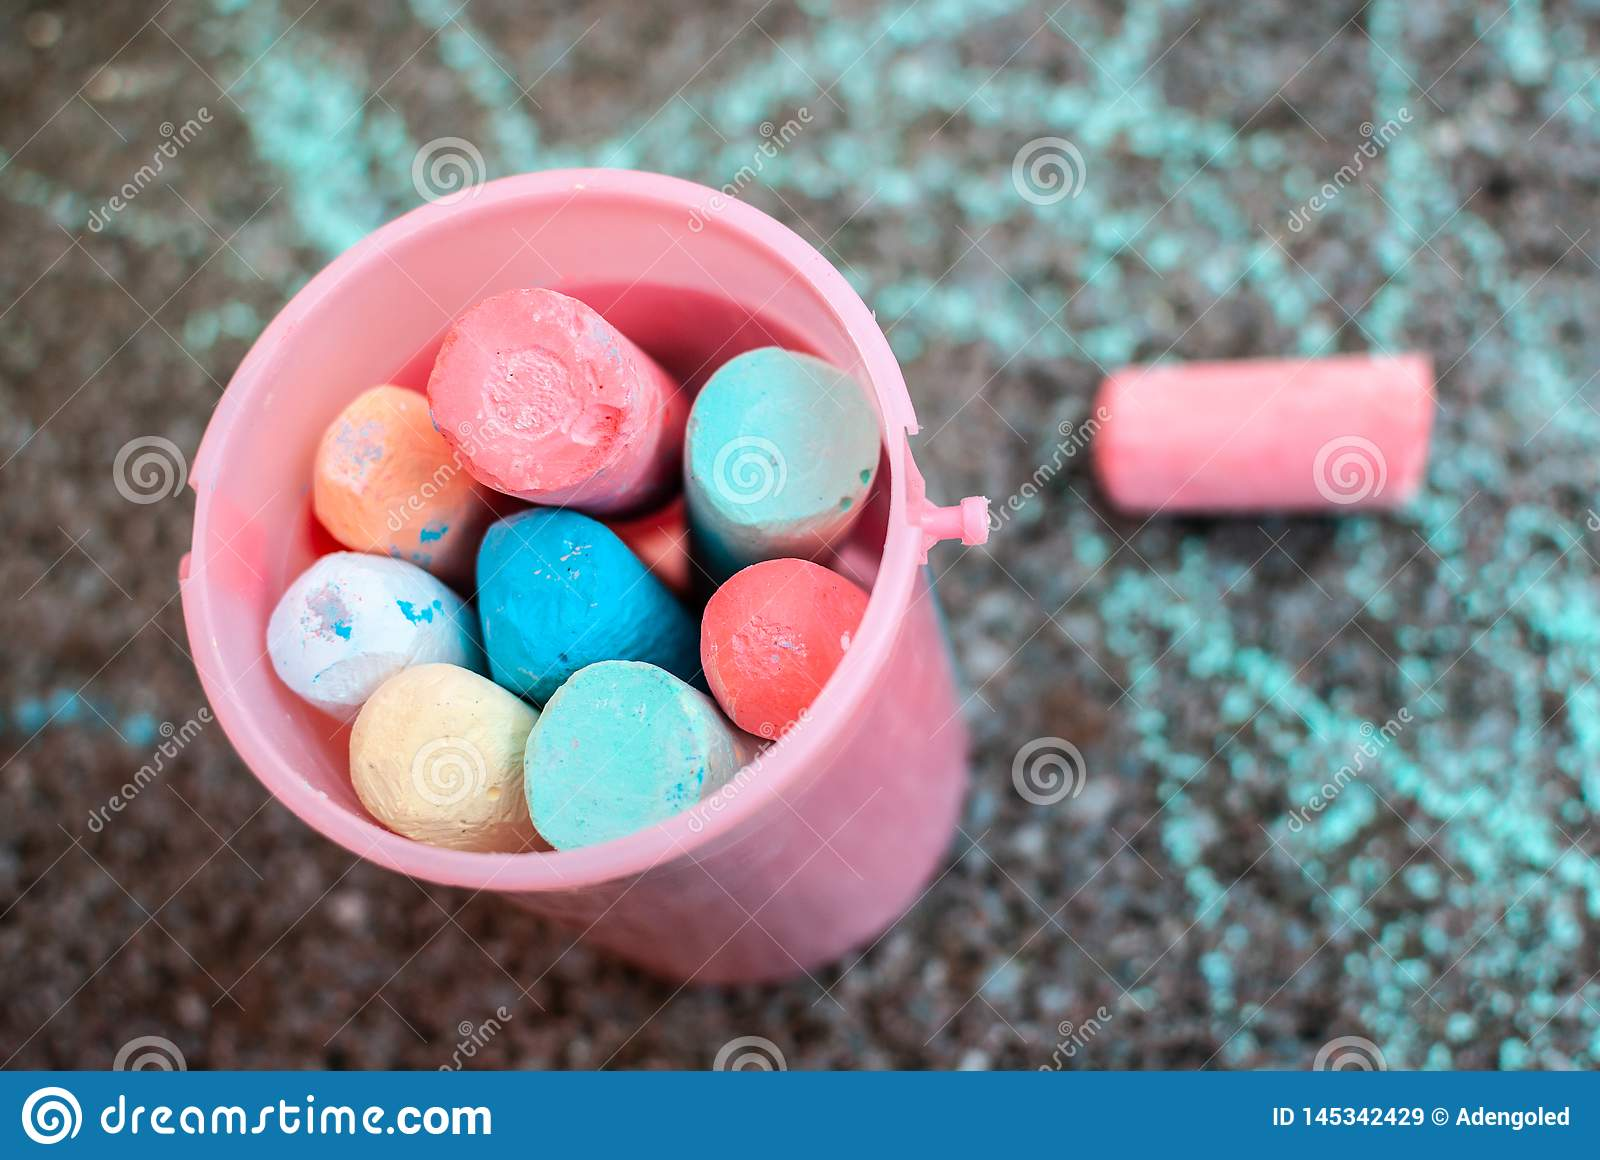 A bucket of colourful chalks against pavement full of scribbles. Toddler or child activity. Back to school.